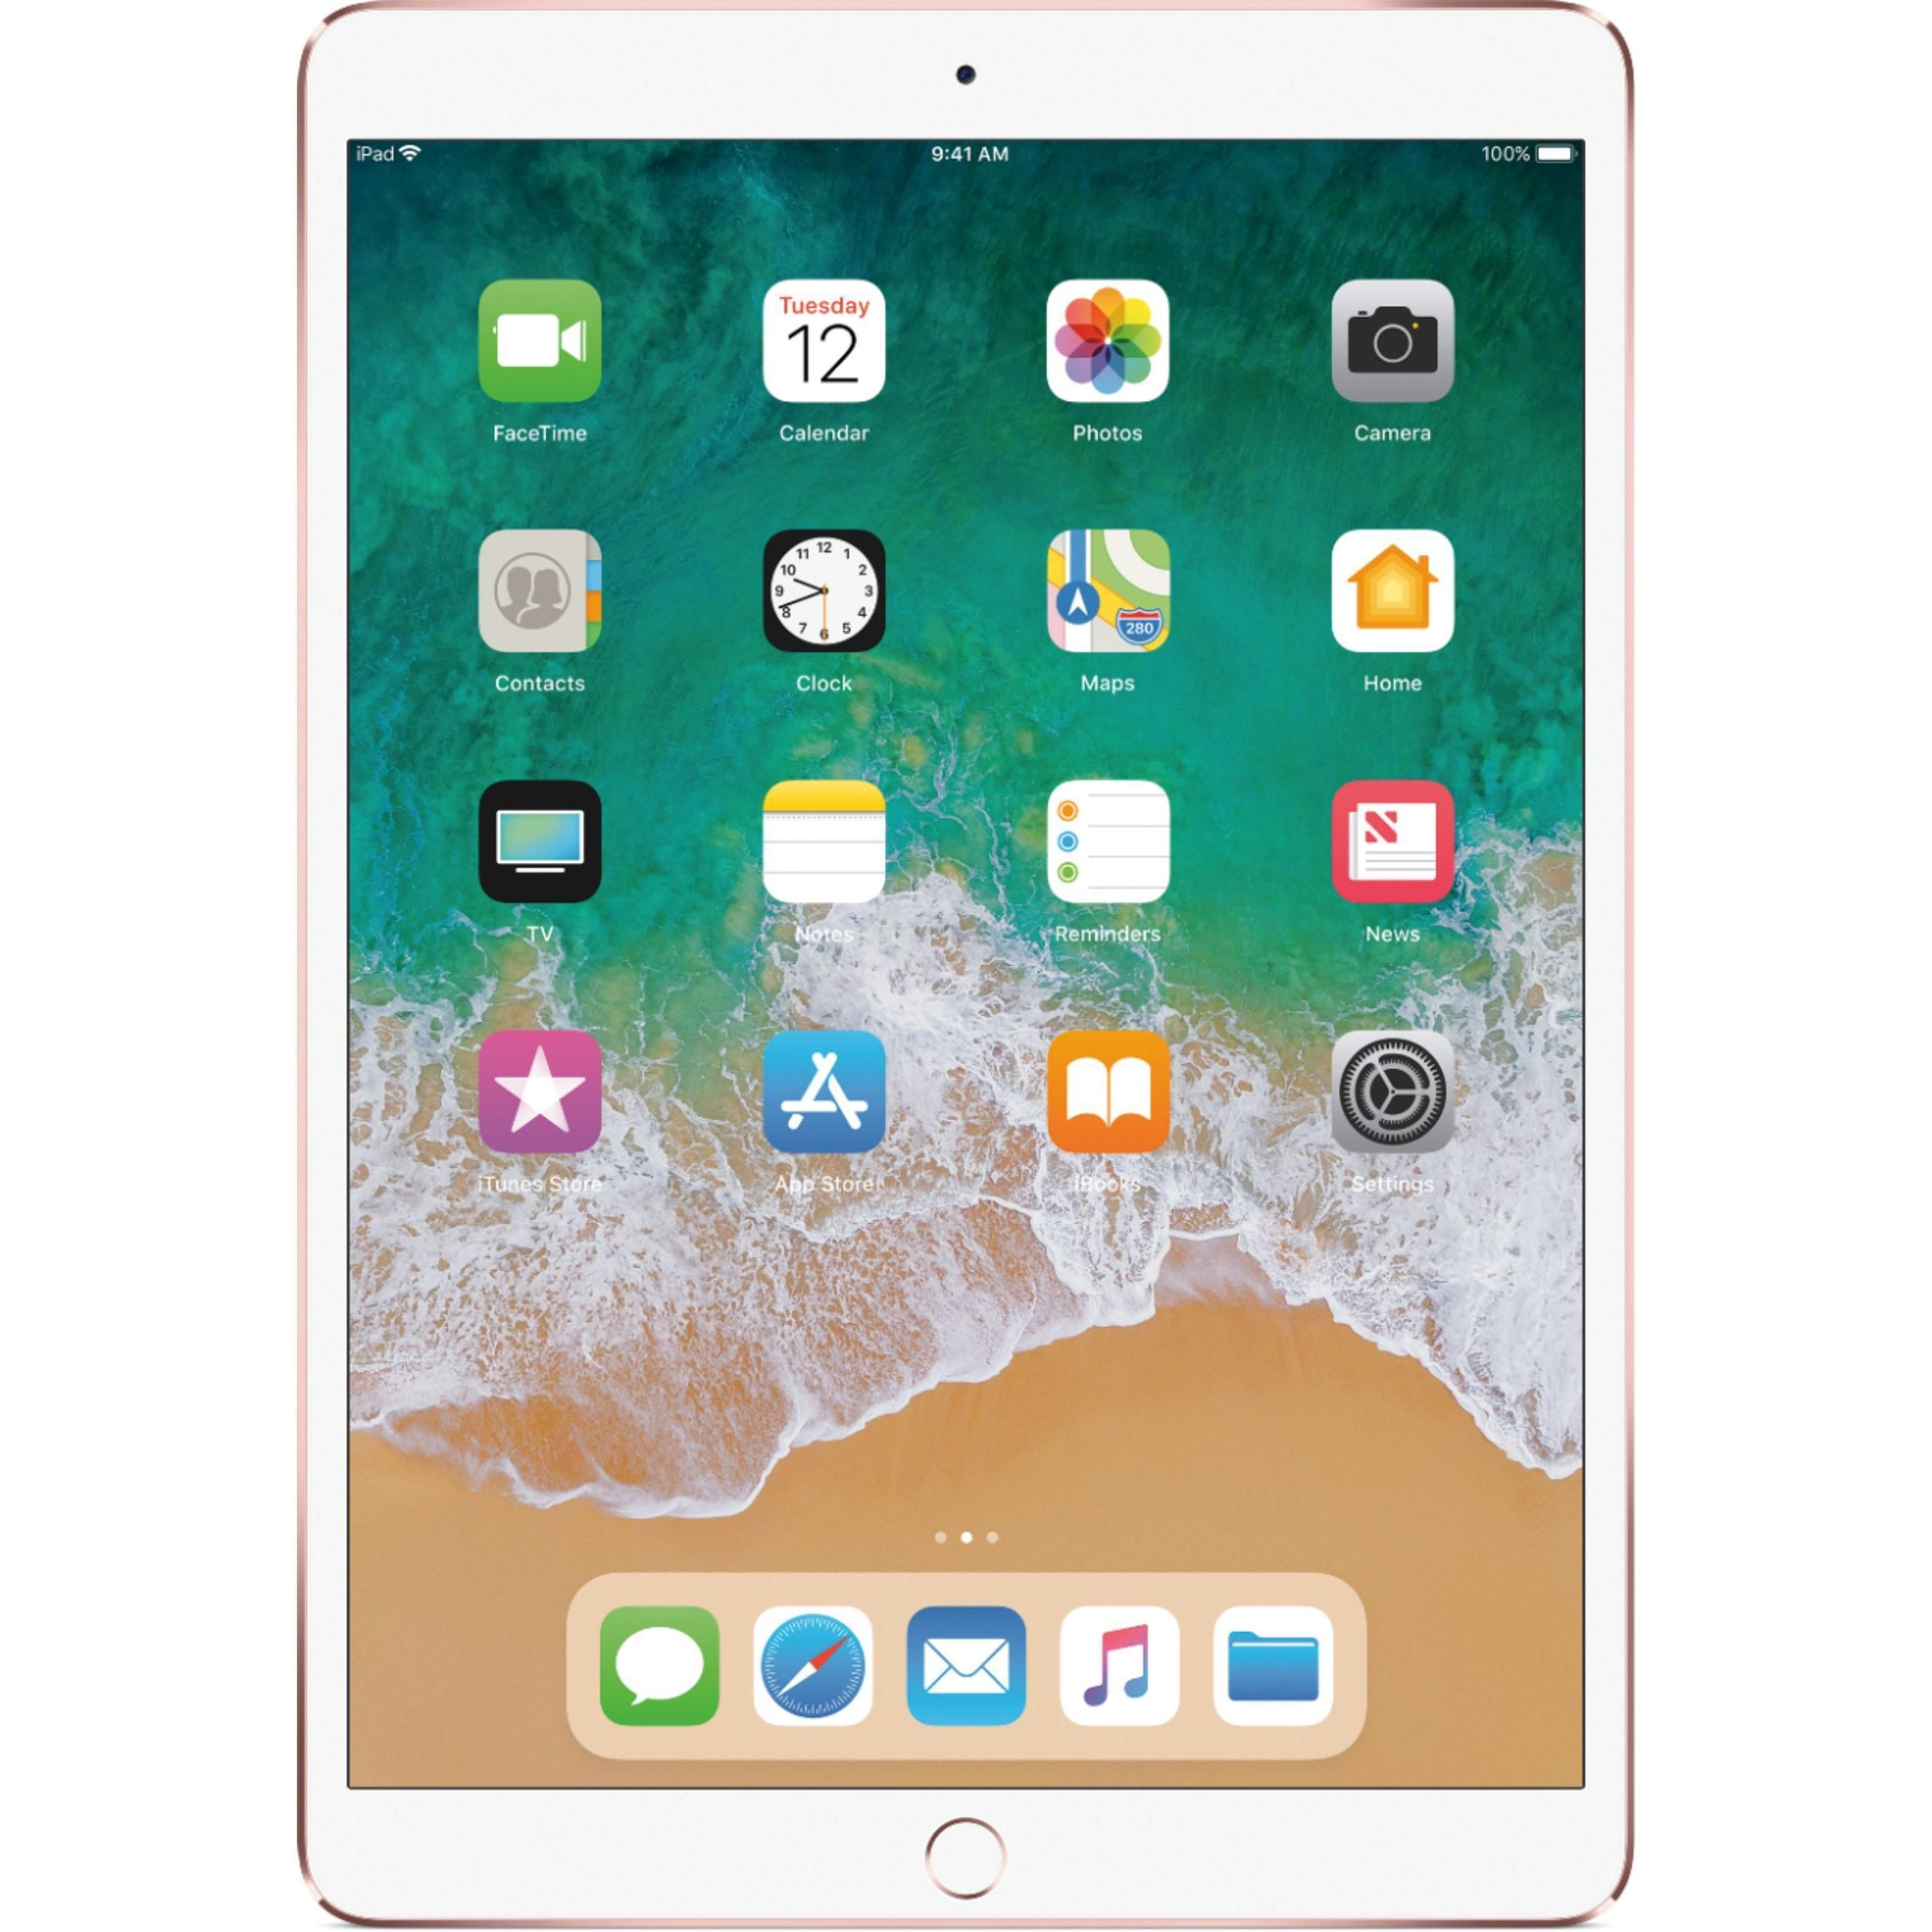 Ipad Pro 10 5 Inch 2nd Gen June 2017 512gb Rose Gold Wi Fi Refurbished In 2020 Ipad Pro Features Apple Ipad Pro Ipad